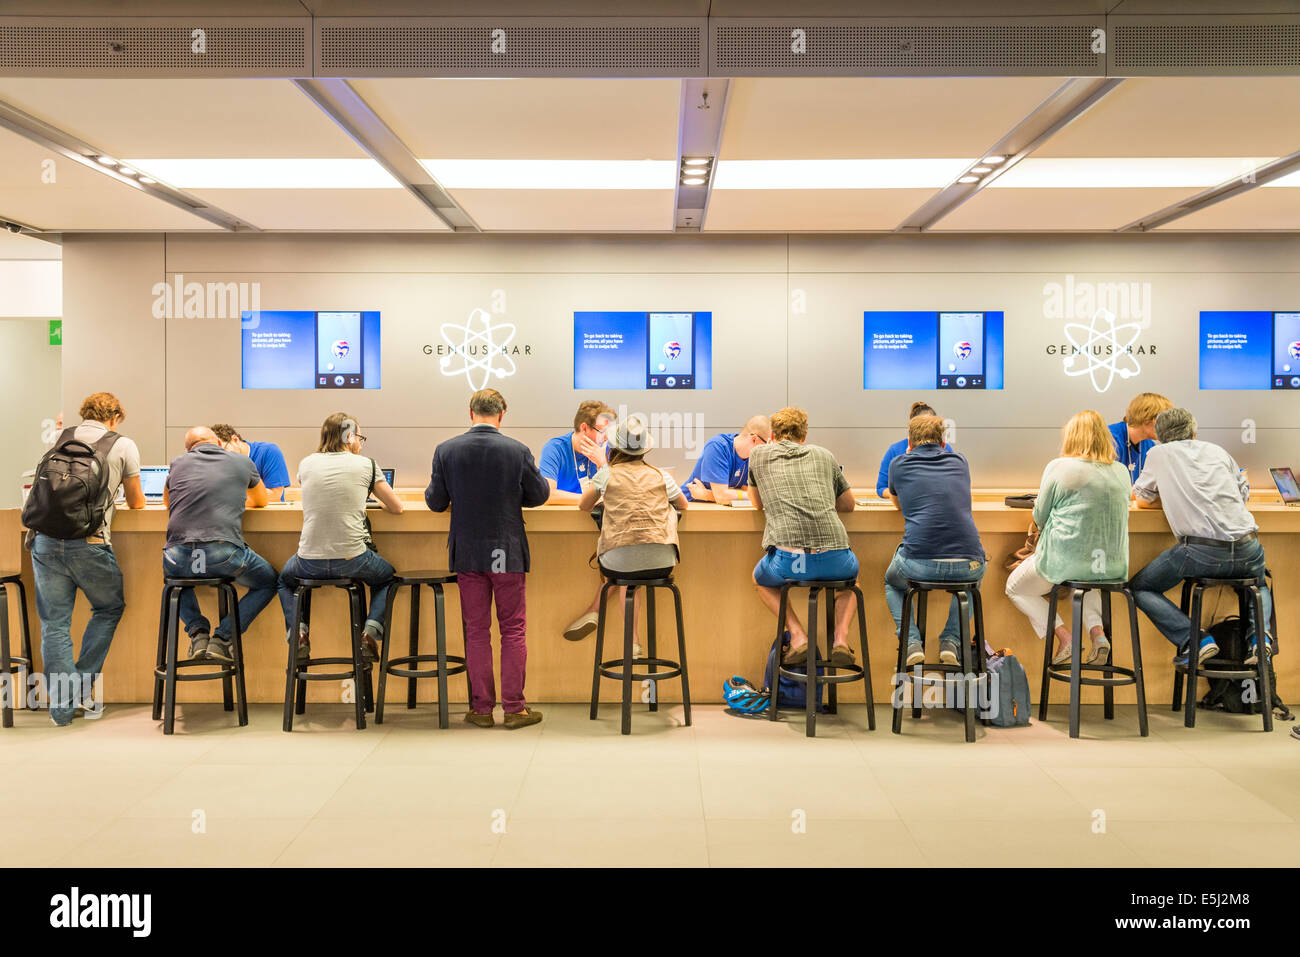 Customer support at the Genius Bar in the Apple Store, London, England, UK - Stock Image